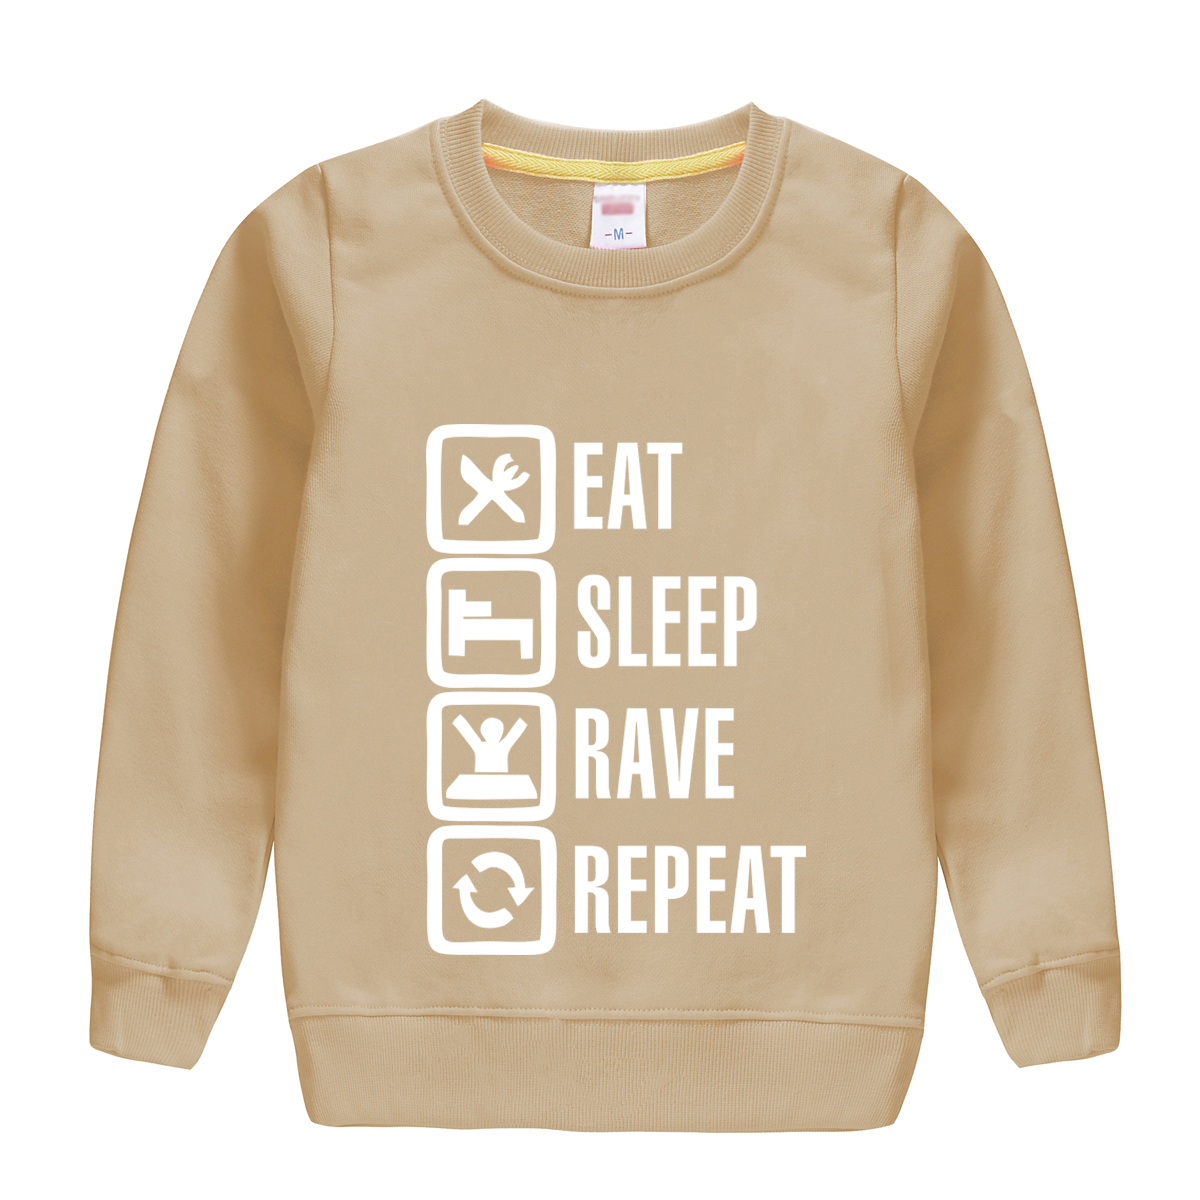 eat sleep rave repeat spring autumn 2018 new arrival cotton sweatshirt children hoodie clothes top soft outwear high quality tee